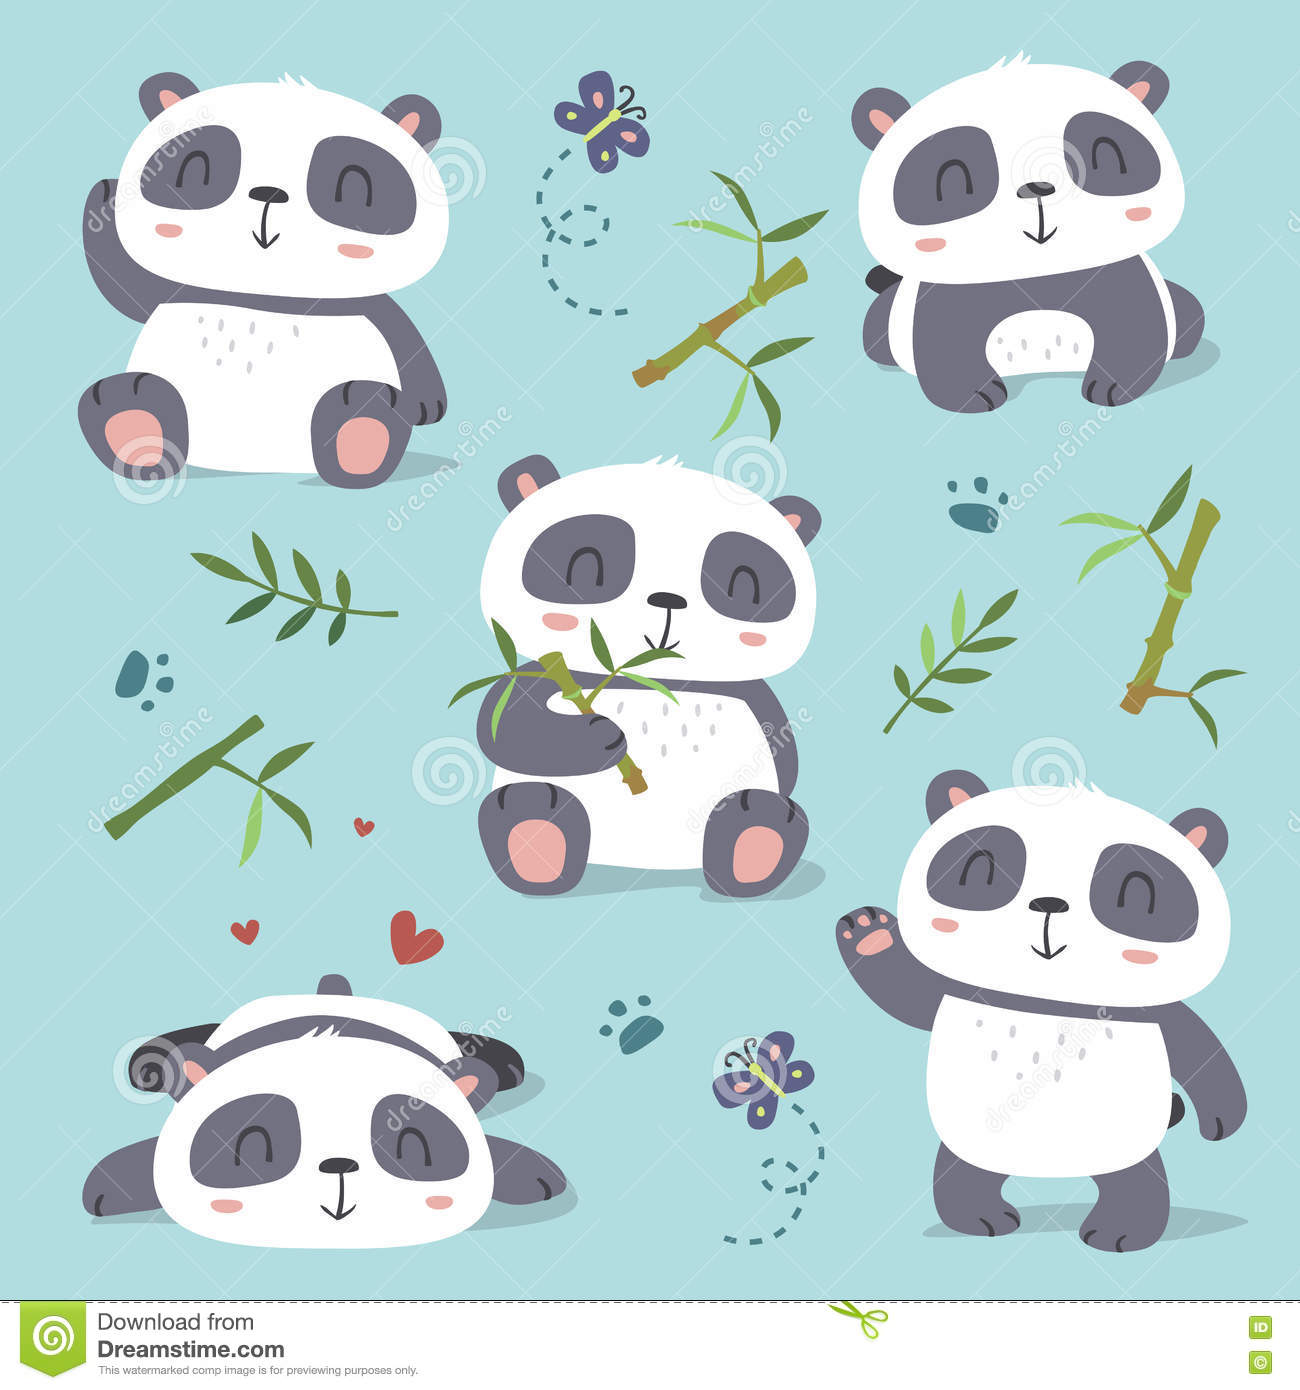 Cartoon style cute panda set